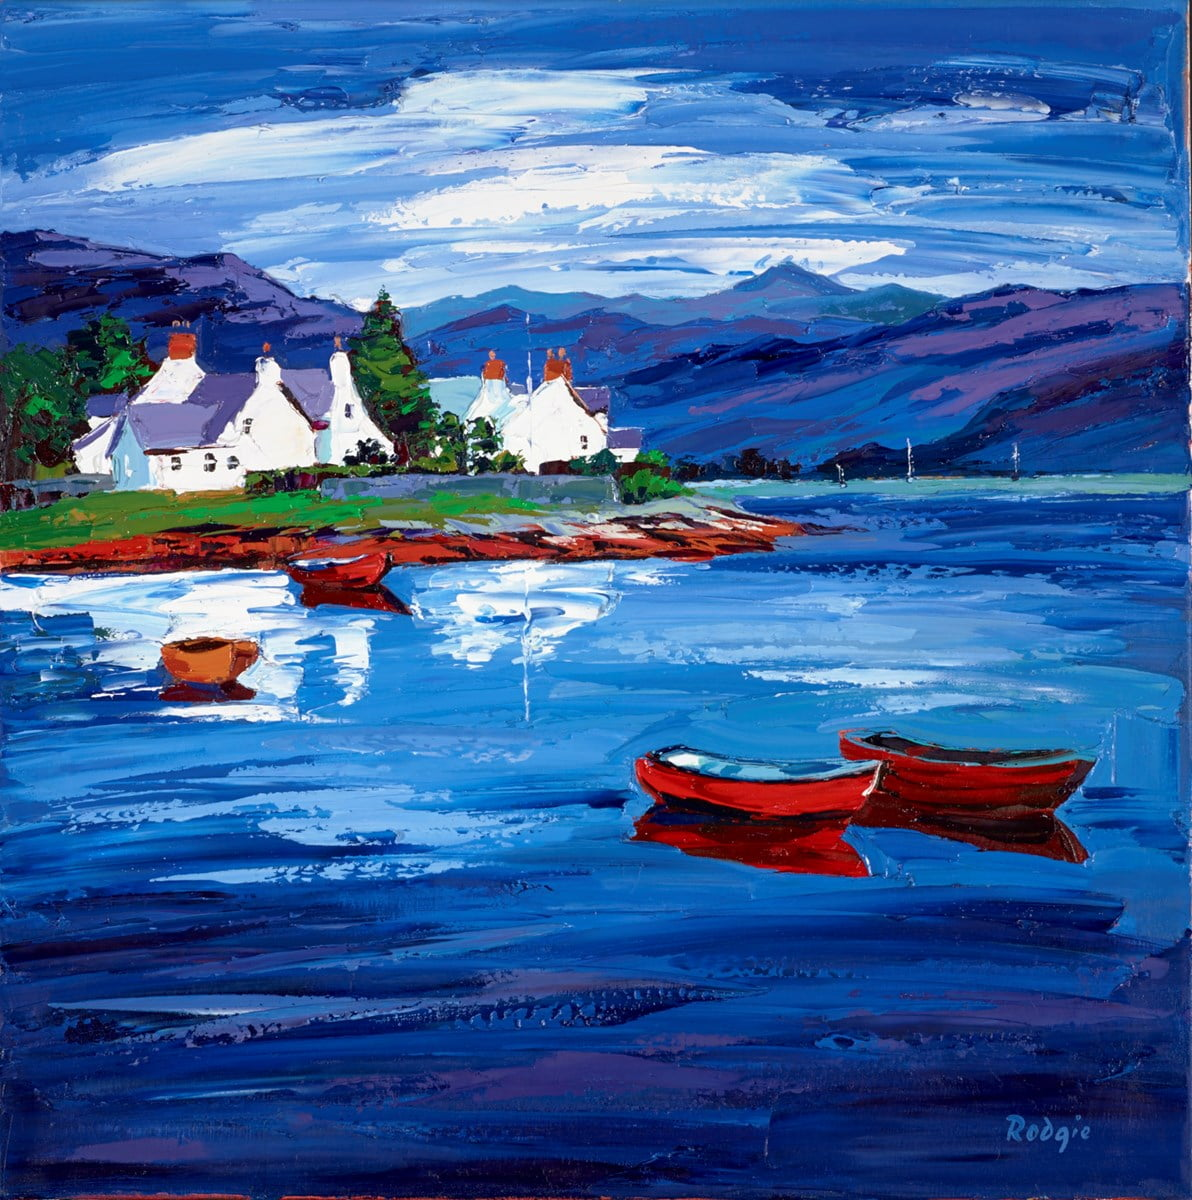 Sitting in Plockton Bay ~ Lynn Rodgie